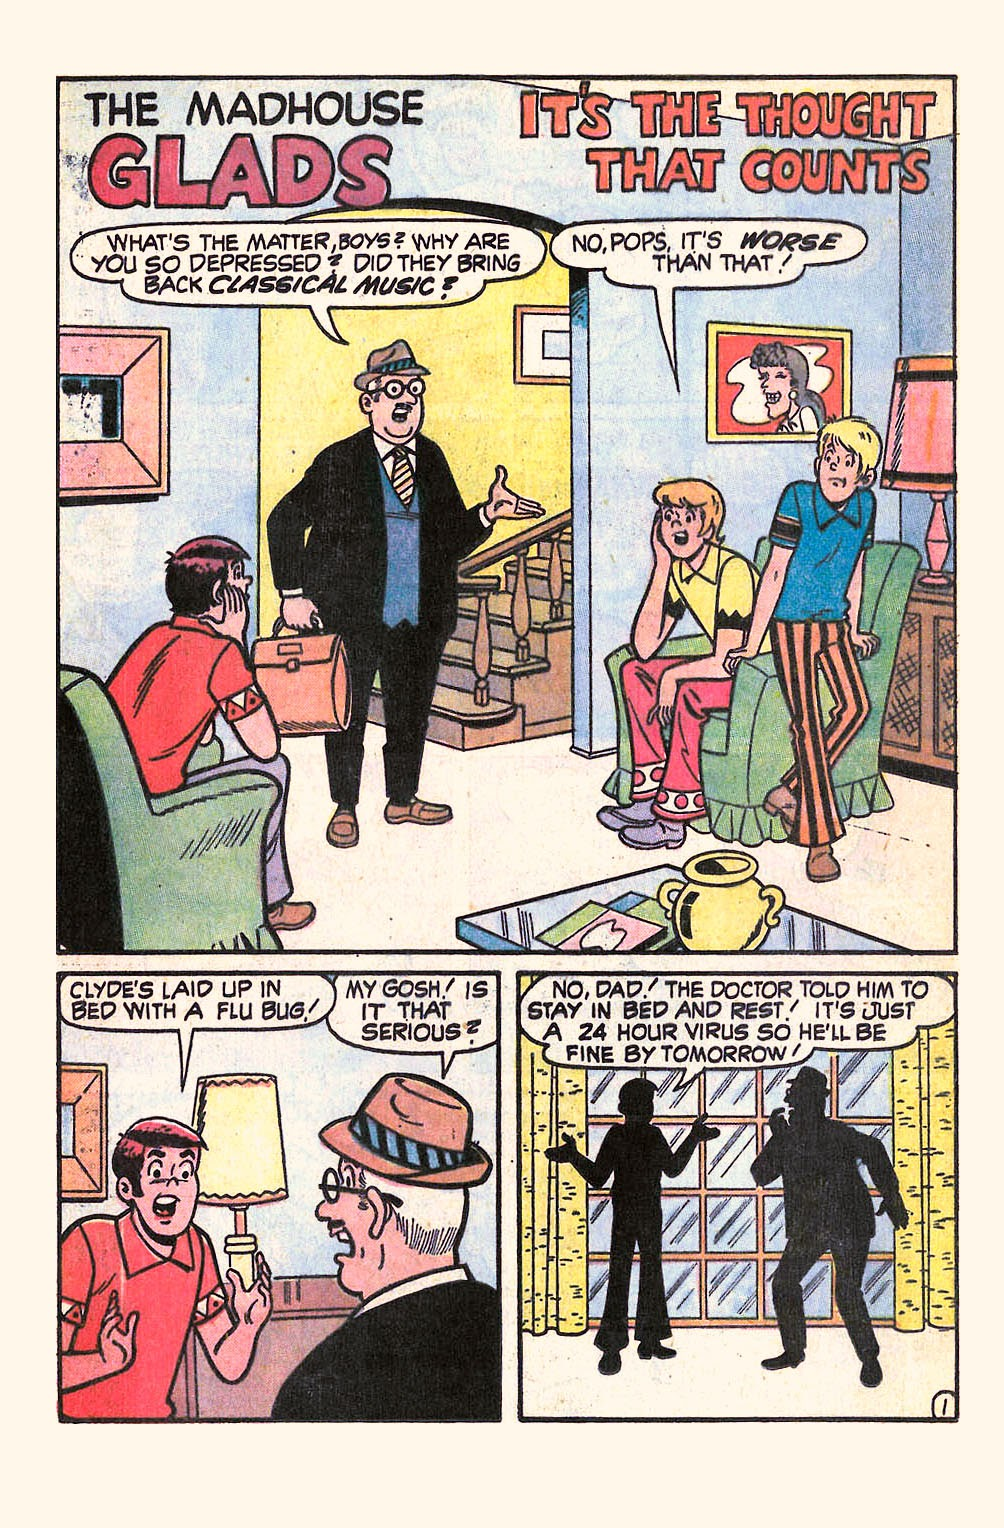 Read online The Mad House Glads comic -  Issue #86 - 28